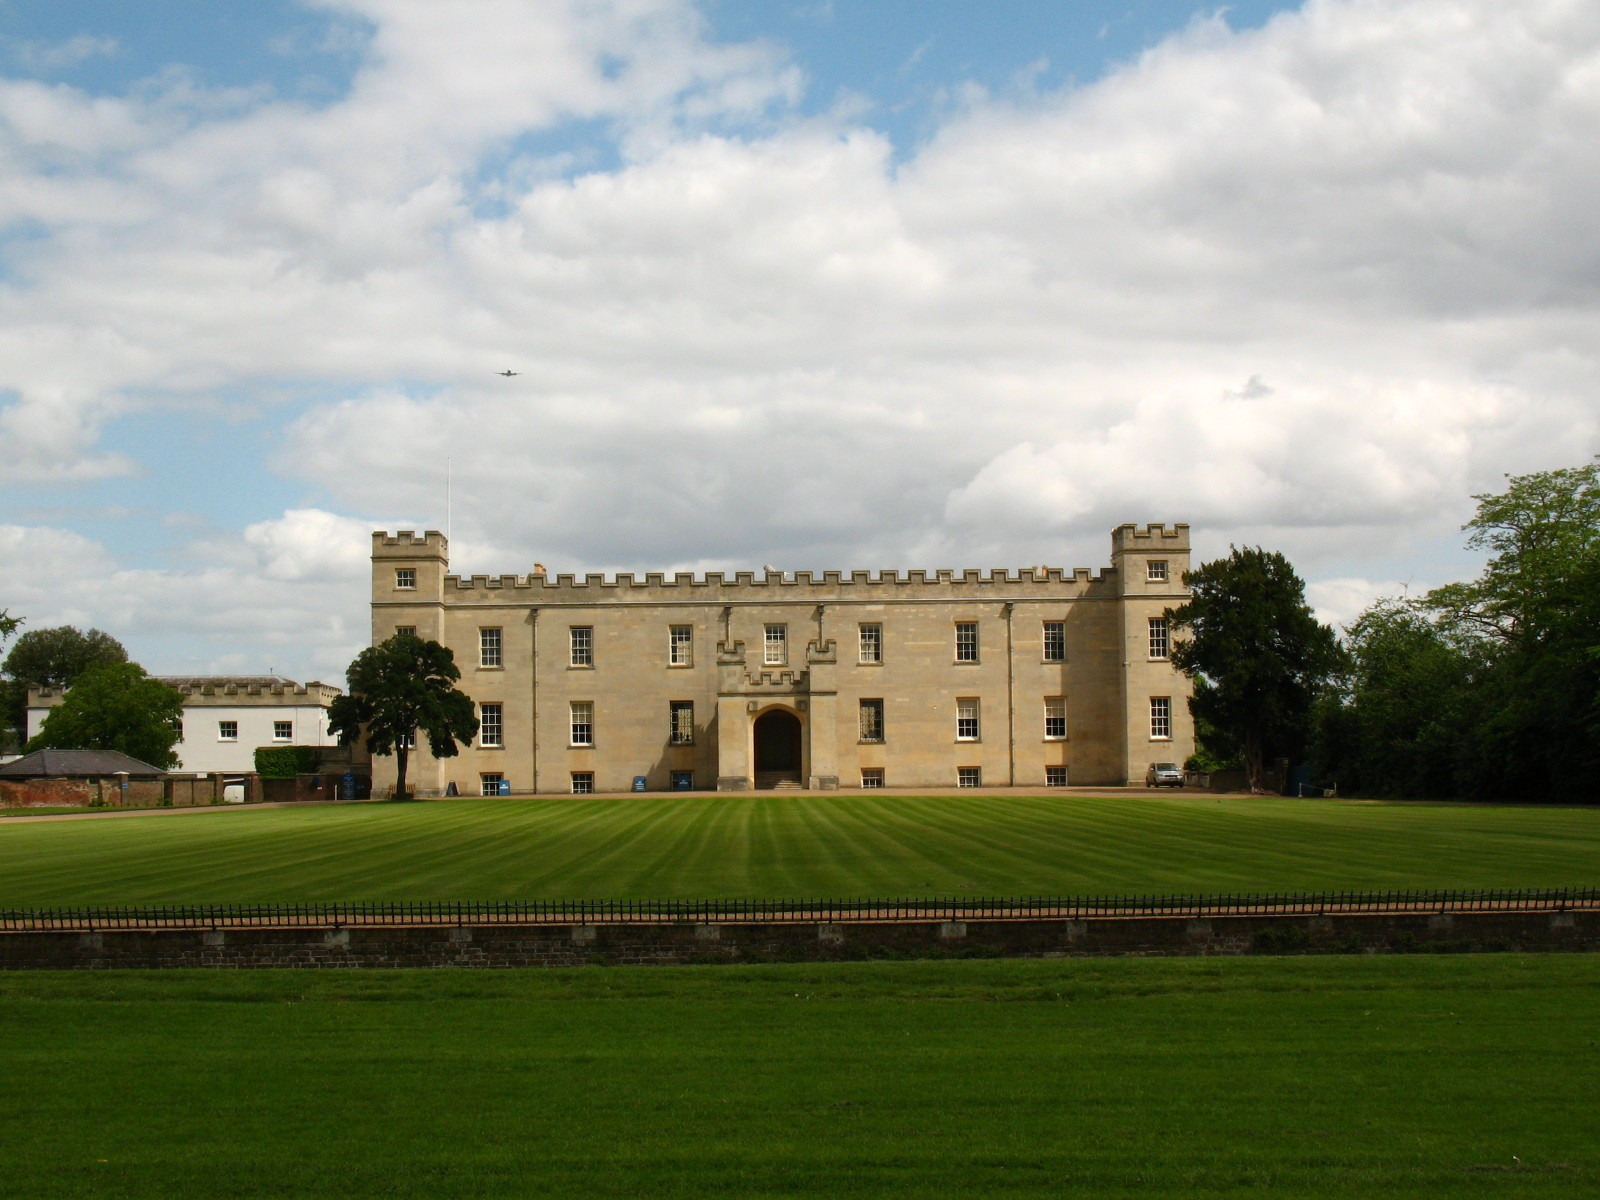 Syon House Is The London Residence Of Duke Northumberland It Was Built Between 1547 And 1552 In Italian Renaissance Style For Its Owner 1st